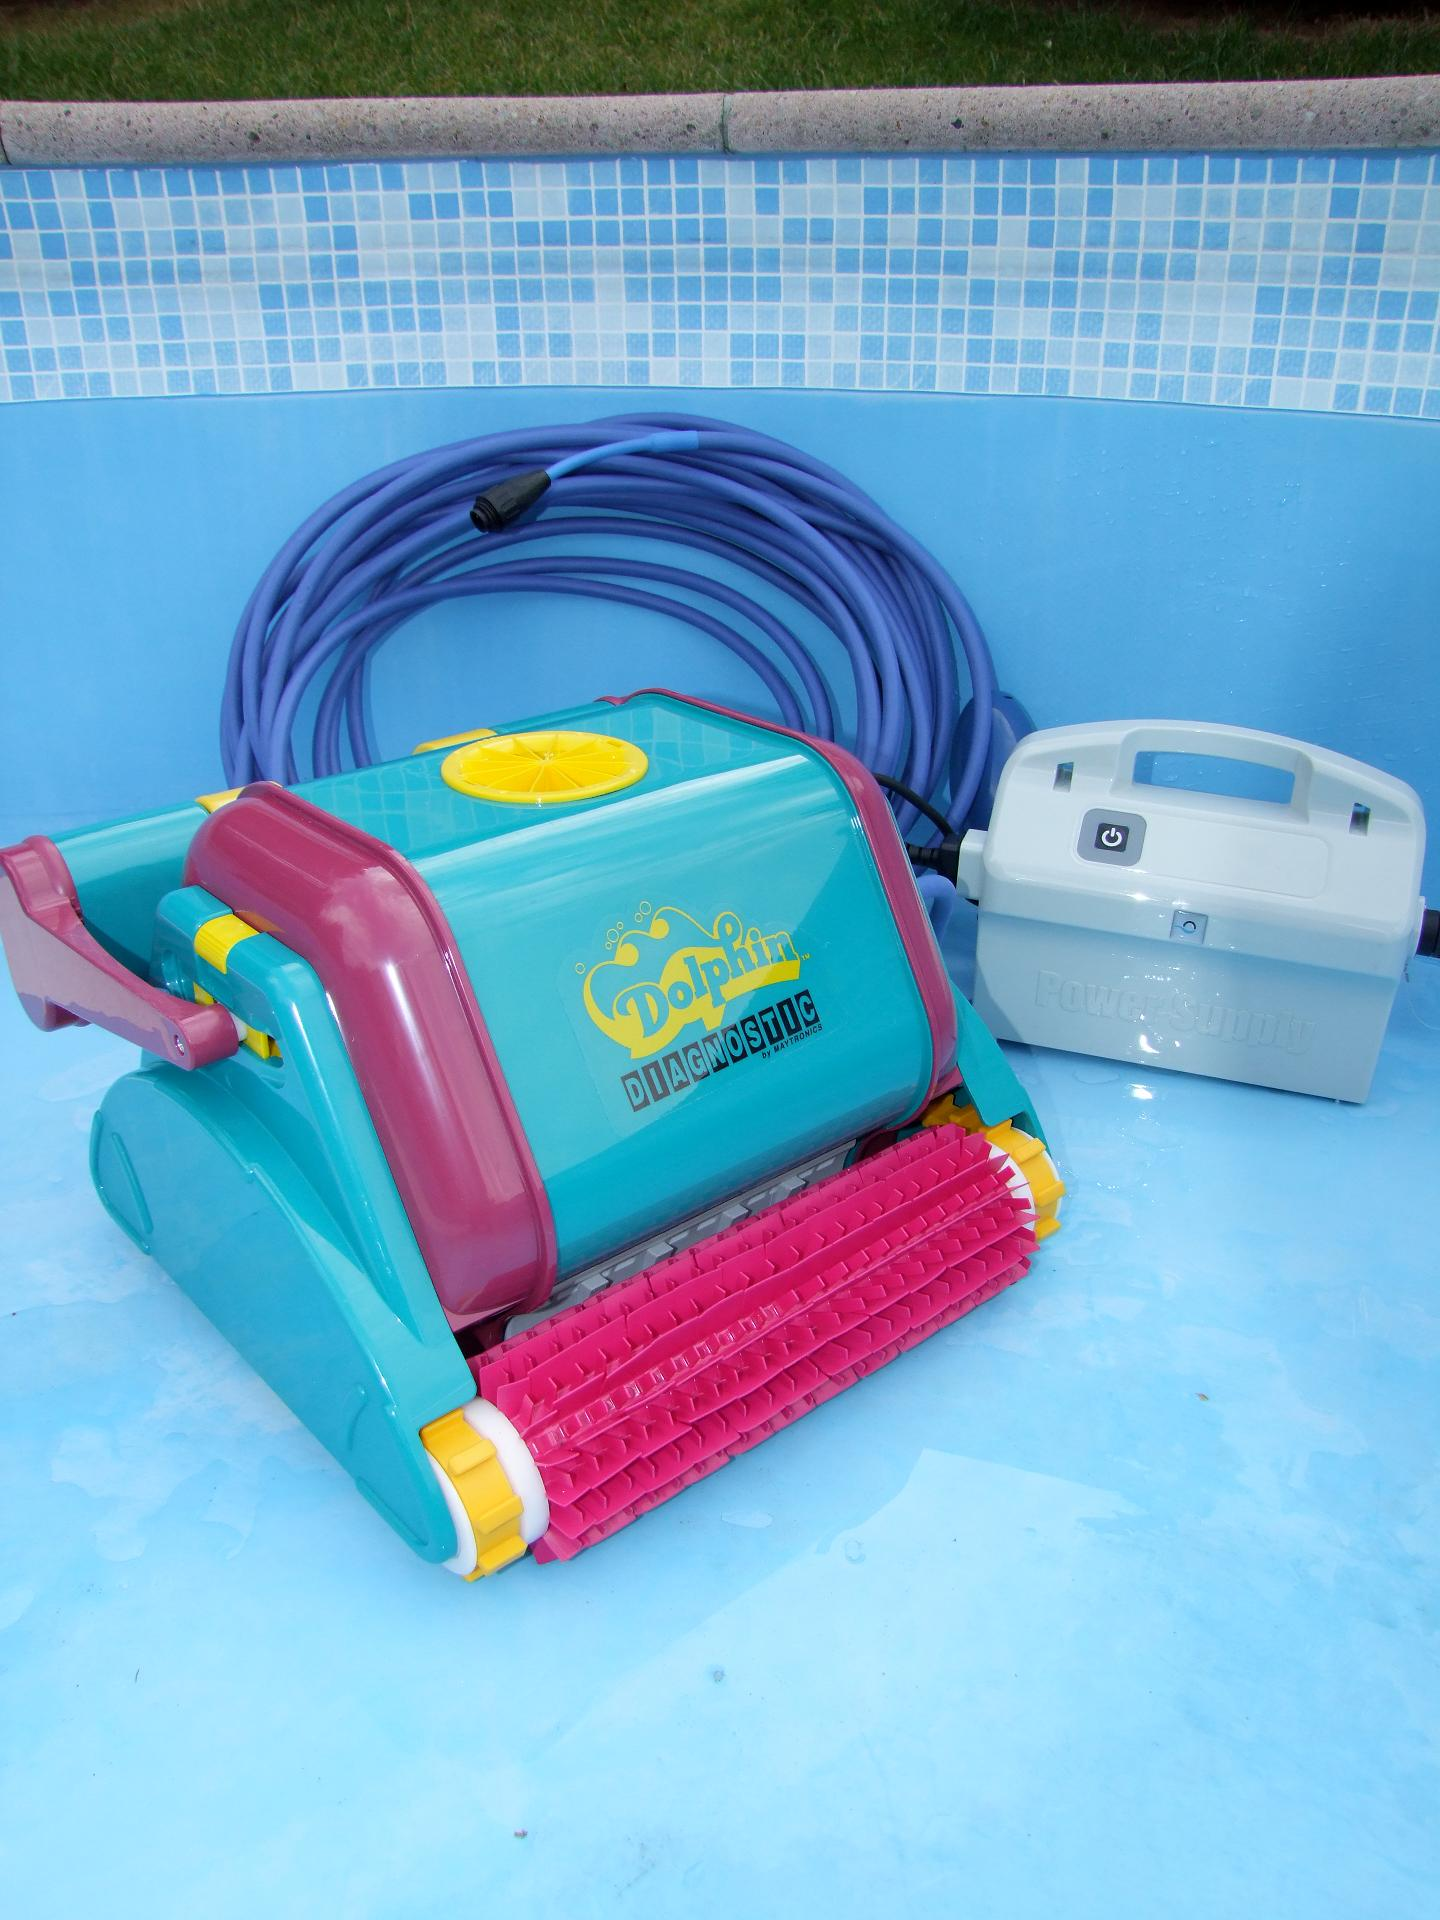 Pool Bodensauger Im Test Dolphin Diagnostic 2001 Pvc Poolroboter 2012 Ebay